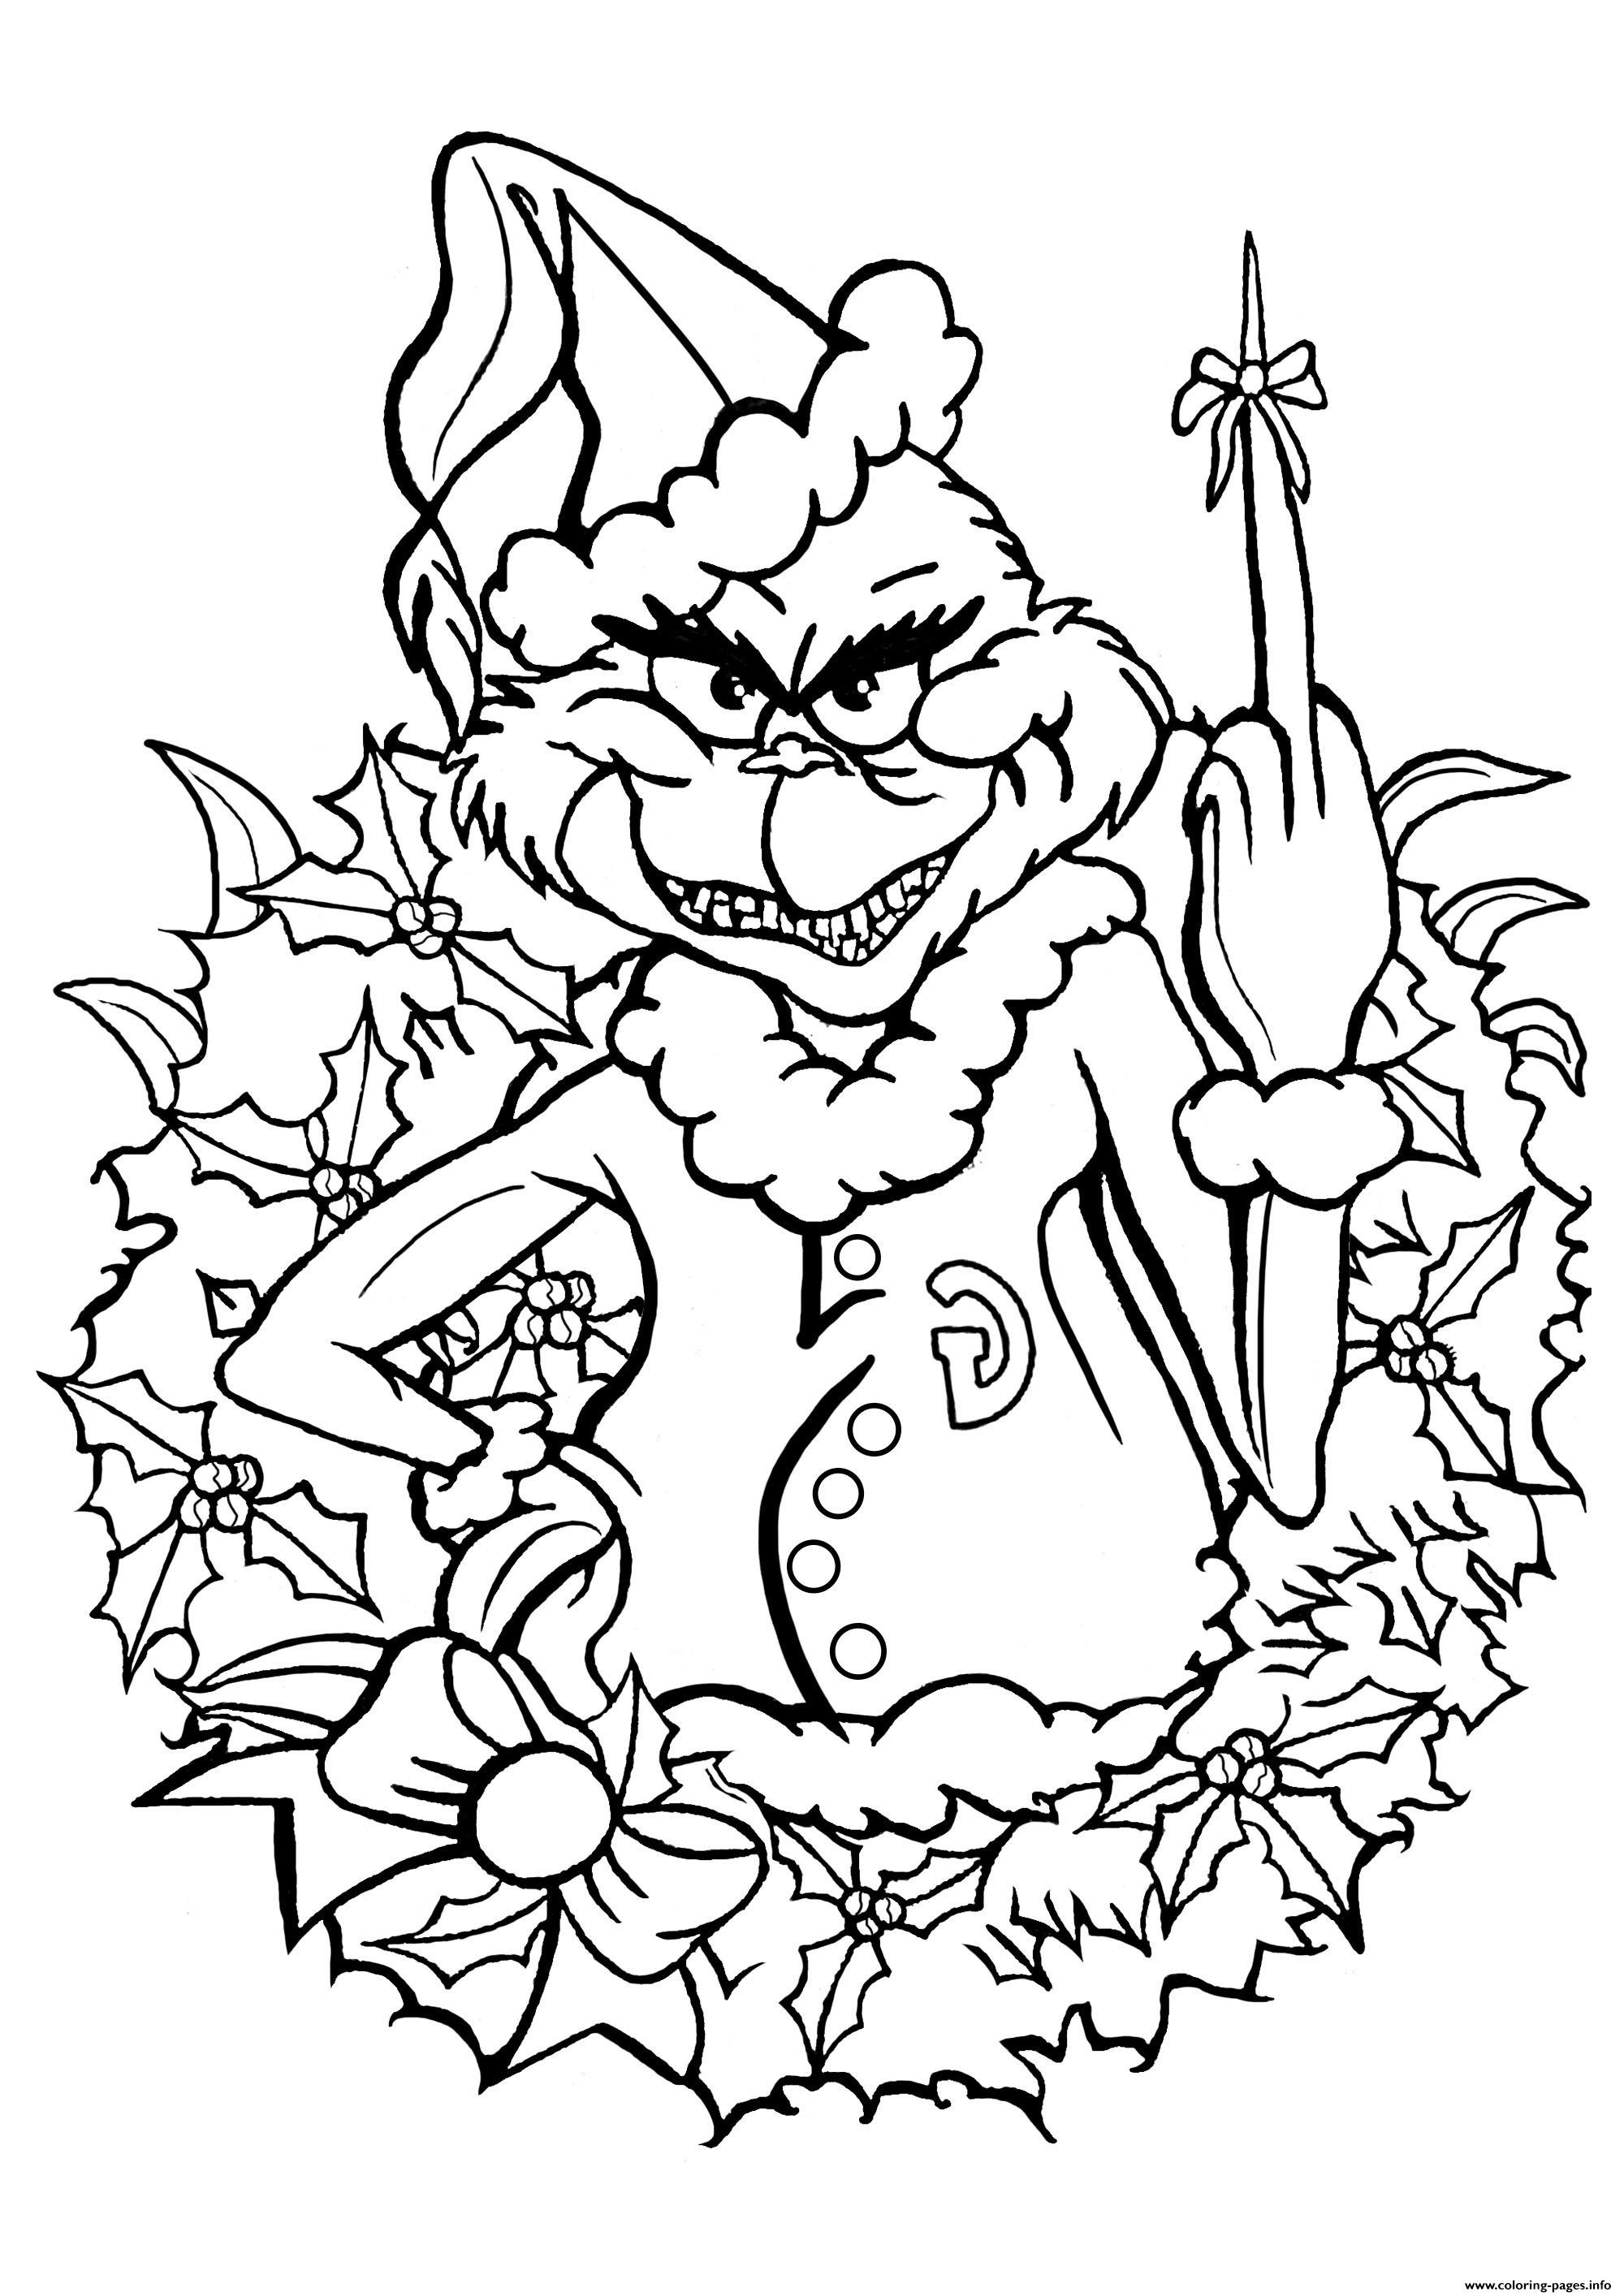 Dr Seuss How The Grinch Stole Christmas Coloring Pages ...